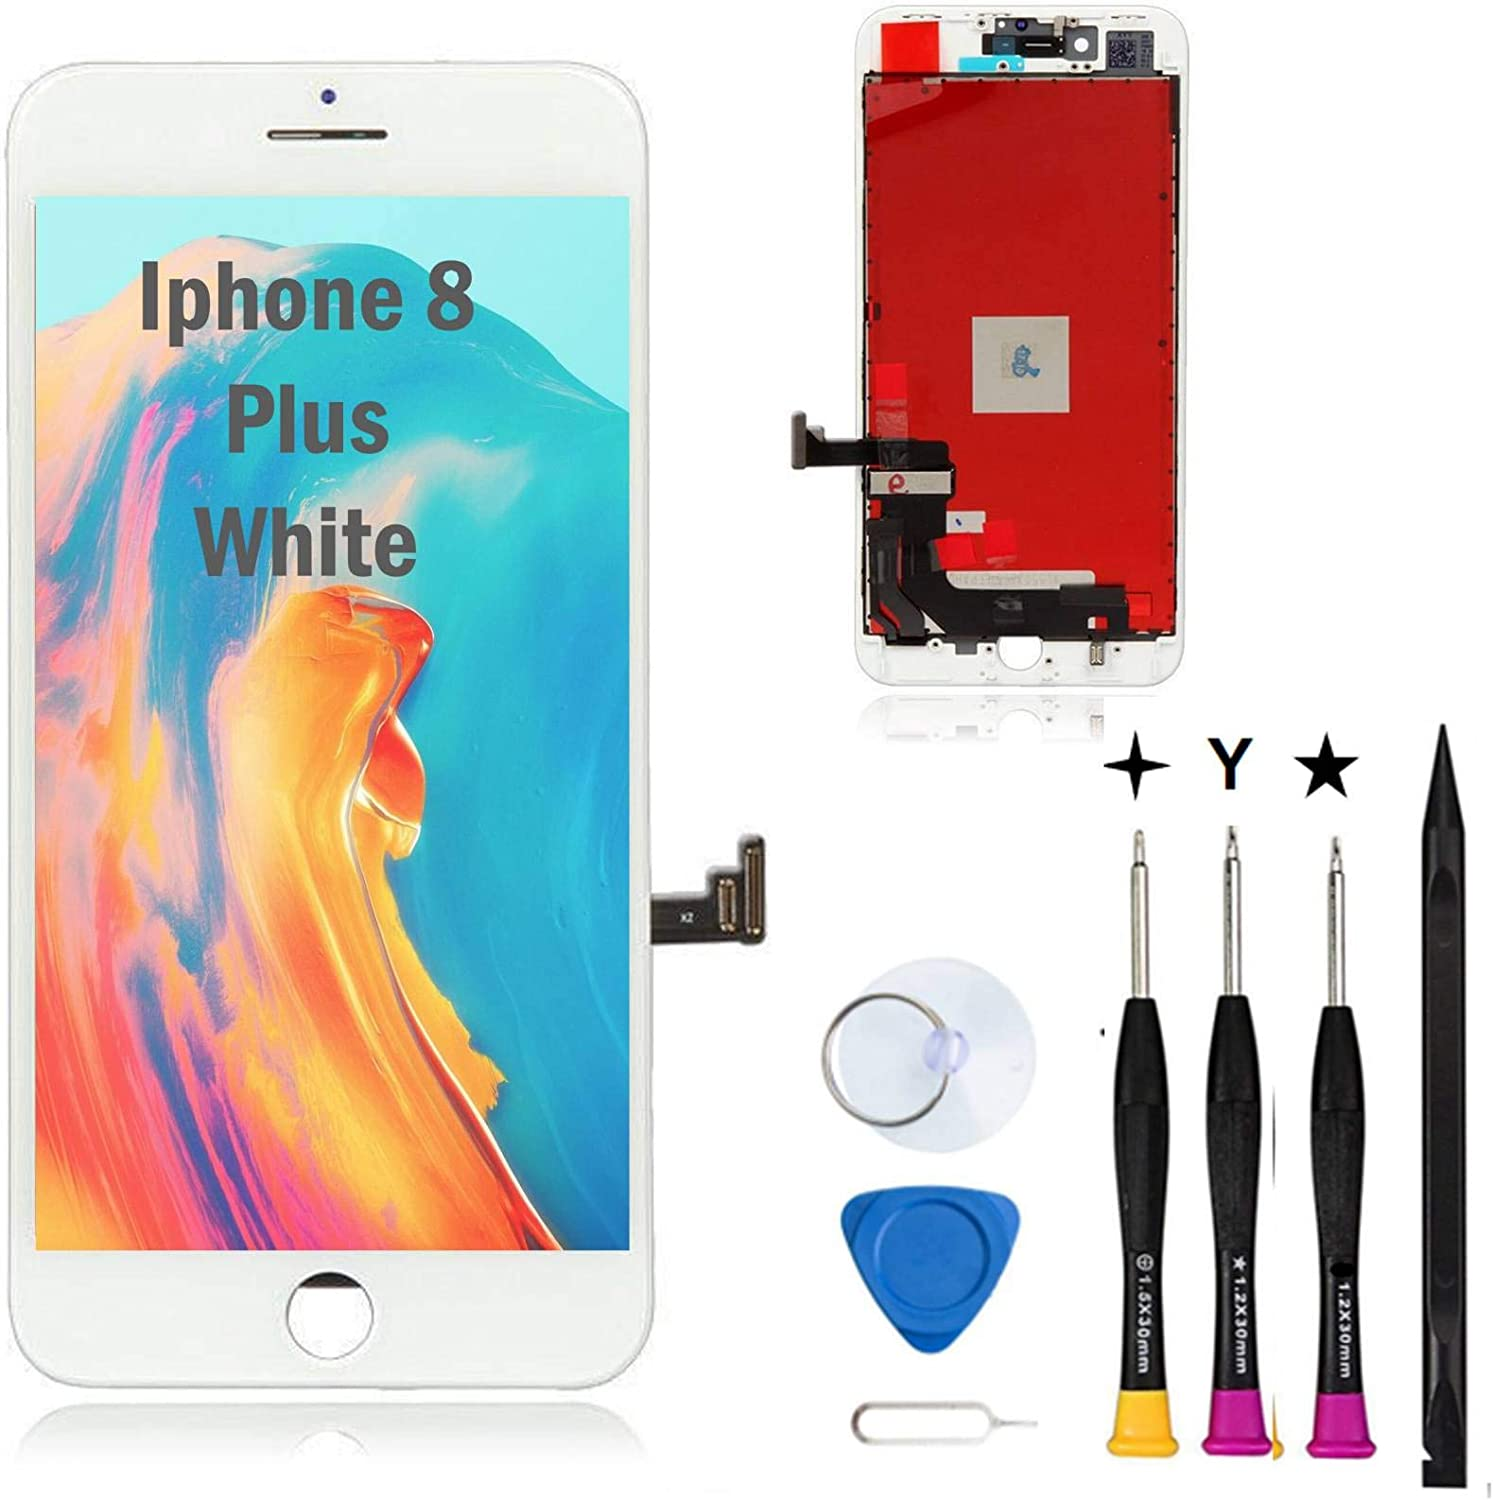 Oli & Ode Screen Replacement for iPhone 8 Plus Screen Replacement iPhone 8 Plus Replacement Screen iPhone 8 Plus LCD Screen Replacement Kit Touch LCD Digitizer Assembly 3D Touch A1864/A1897/A1898